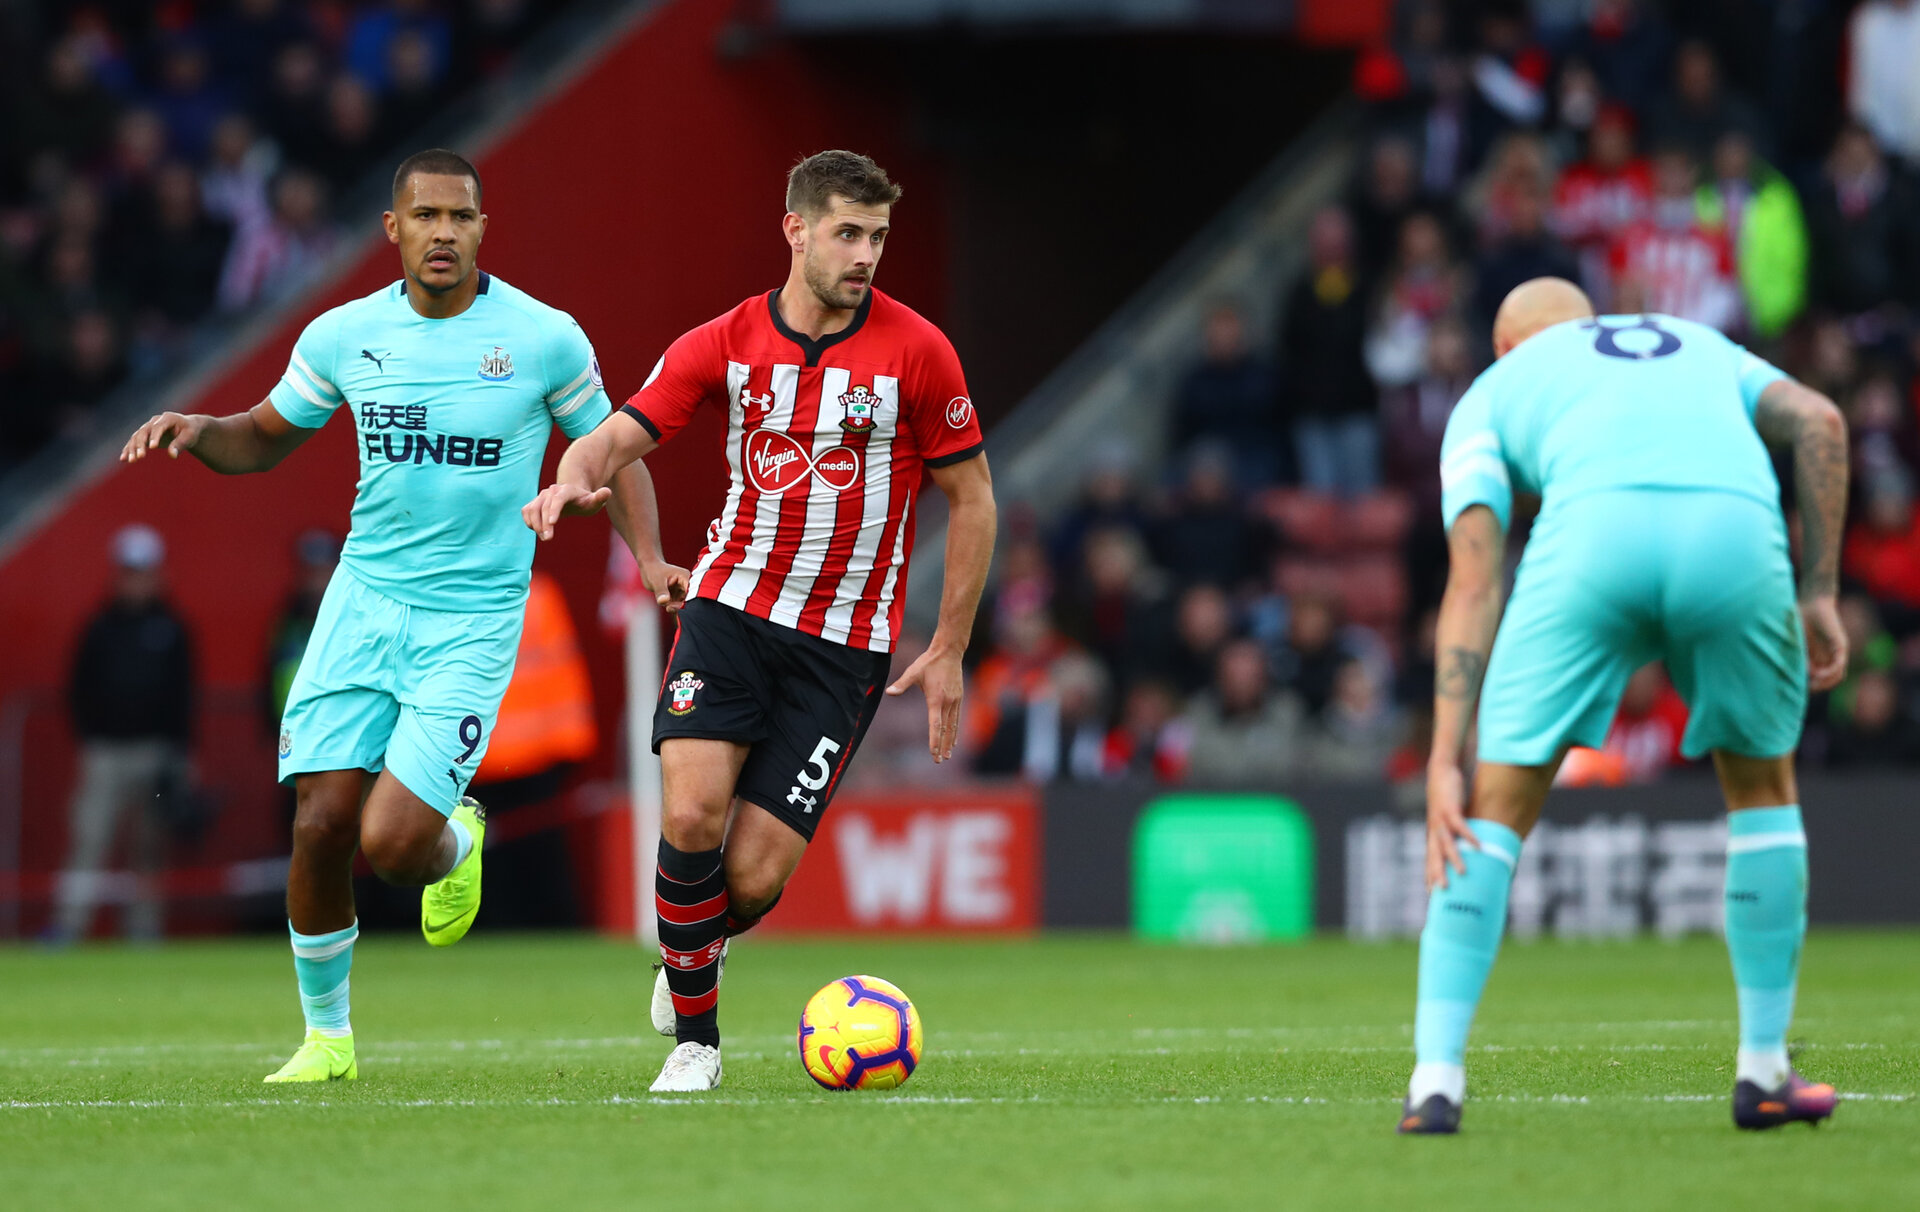 SOUTHAMPTON, ENGLAND - OCTOBER 27: Jack Stephens of Southampton during the Premier League match between Southampton FC and Newcastle United at St Mary's Stadium on October 27, 2018 in Southampton, United Kingdom. (Photo by Matt Watson/Southampton FC via Getty Images)